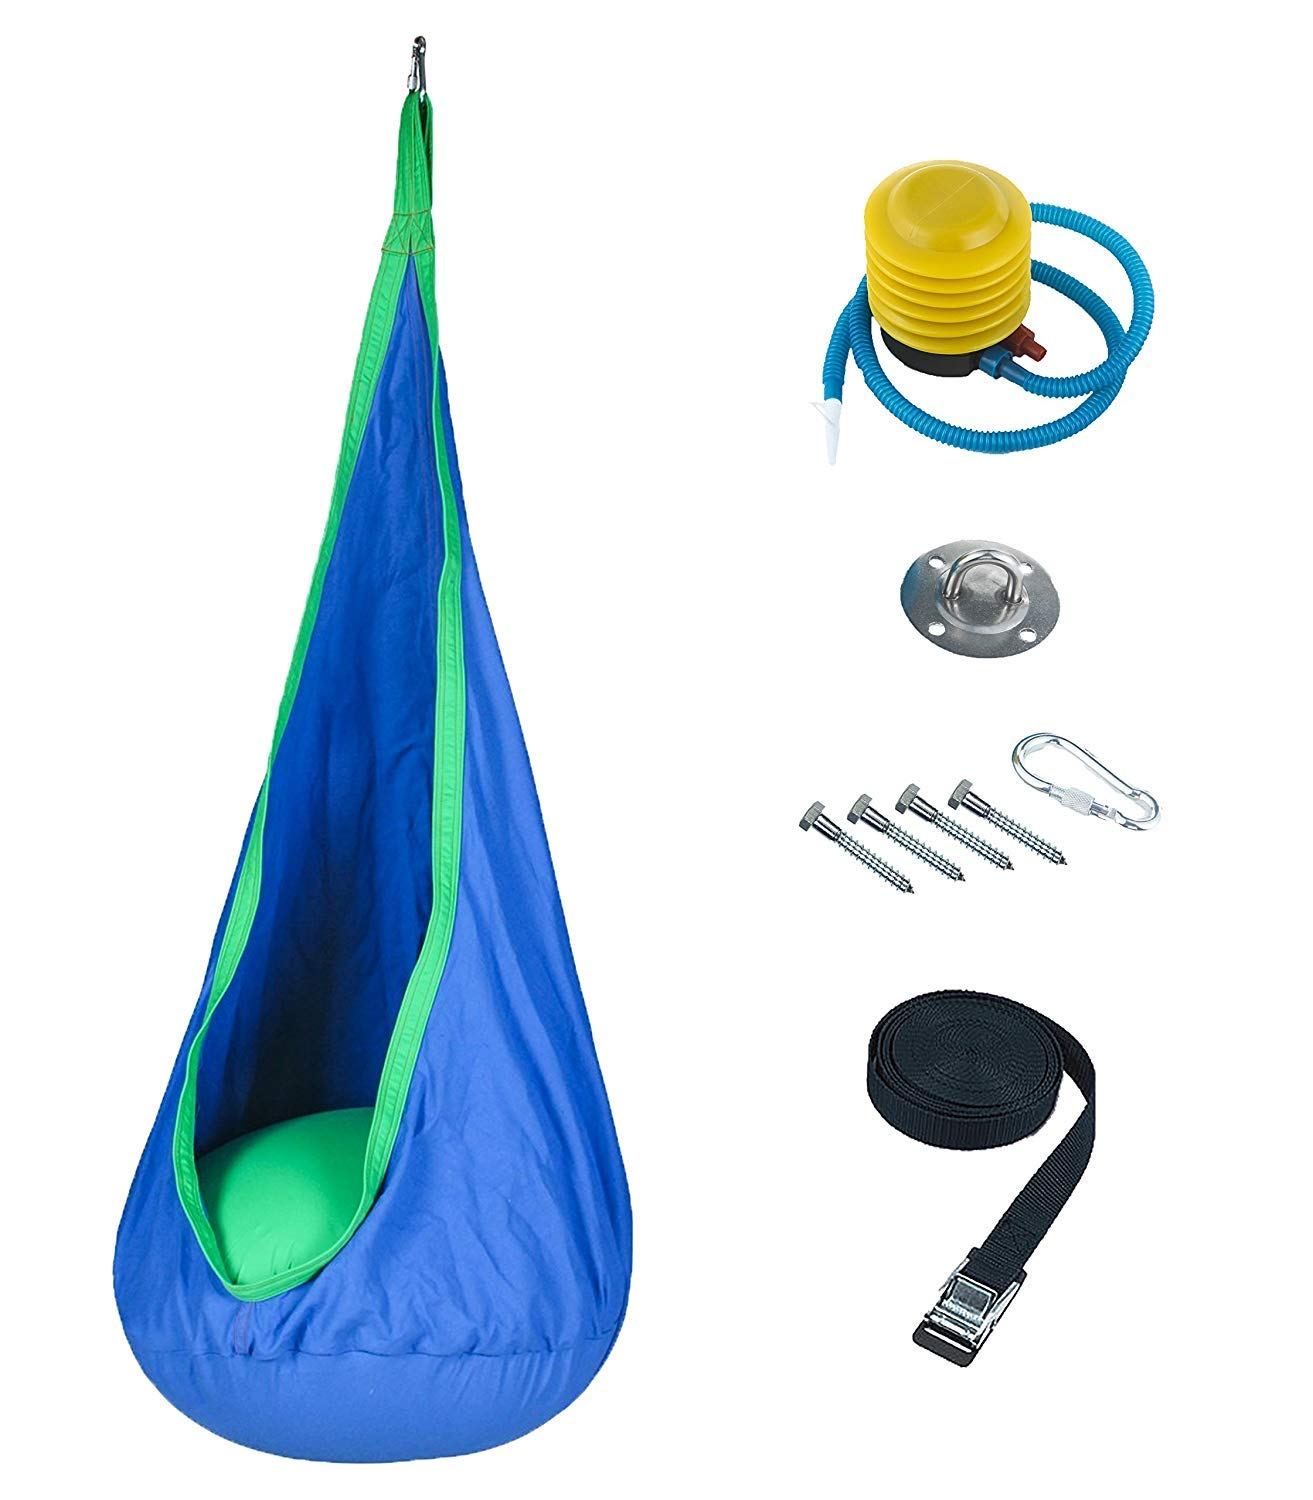 Harkla Sensory Swing for Kids - Includes Hardware - Great as a Hanging Pod Swing, Autism Swing or Therapy Swing